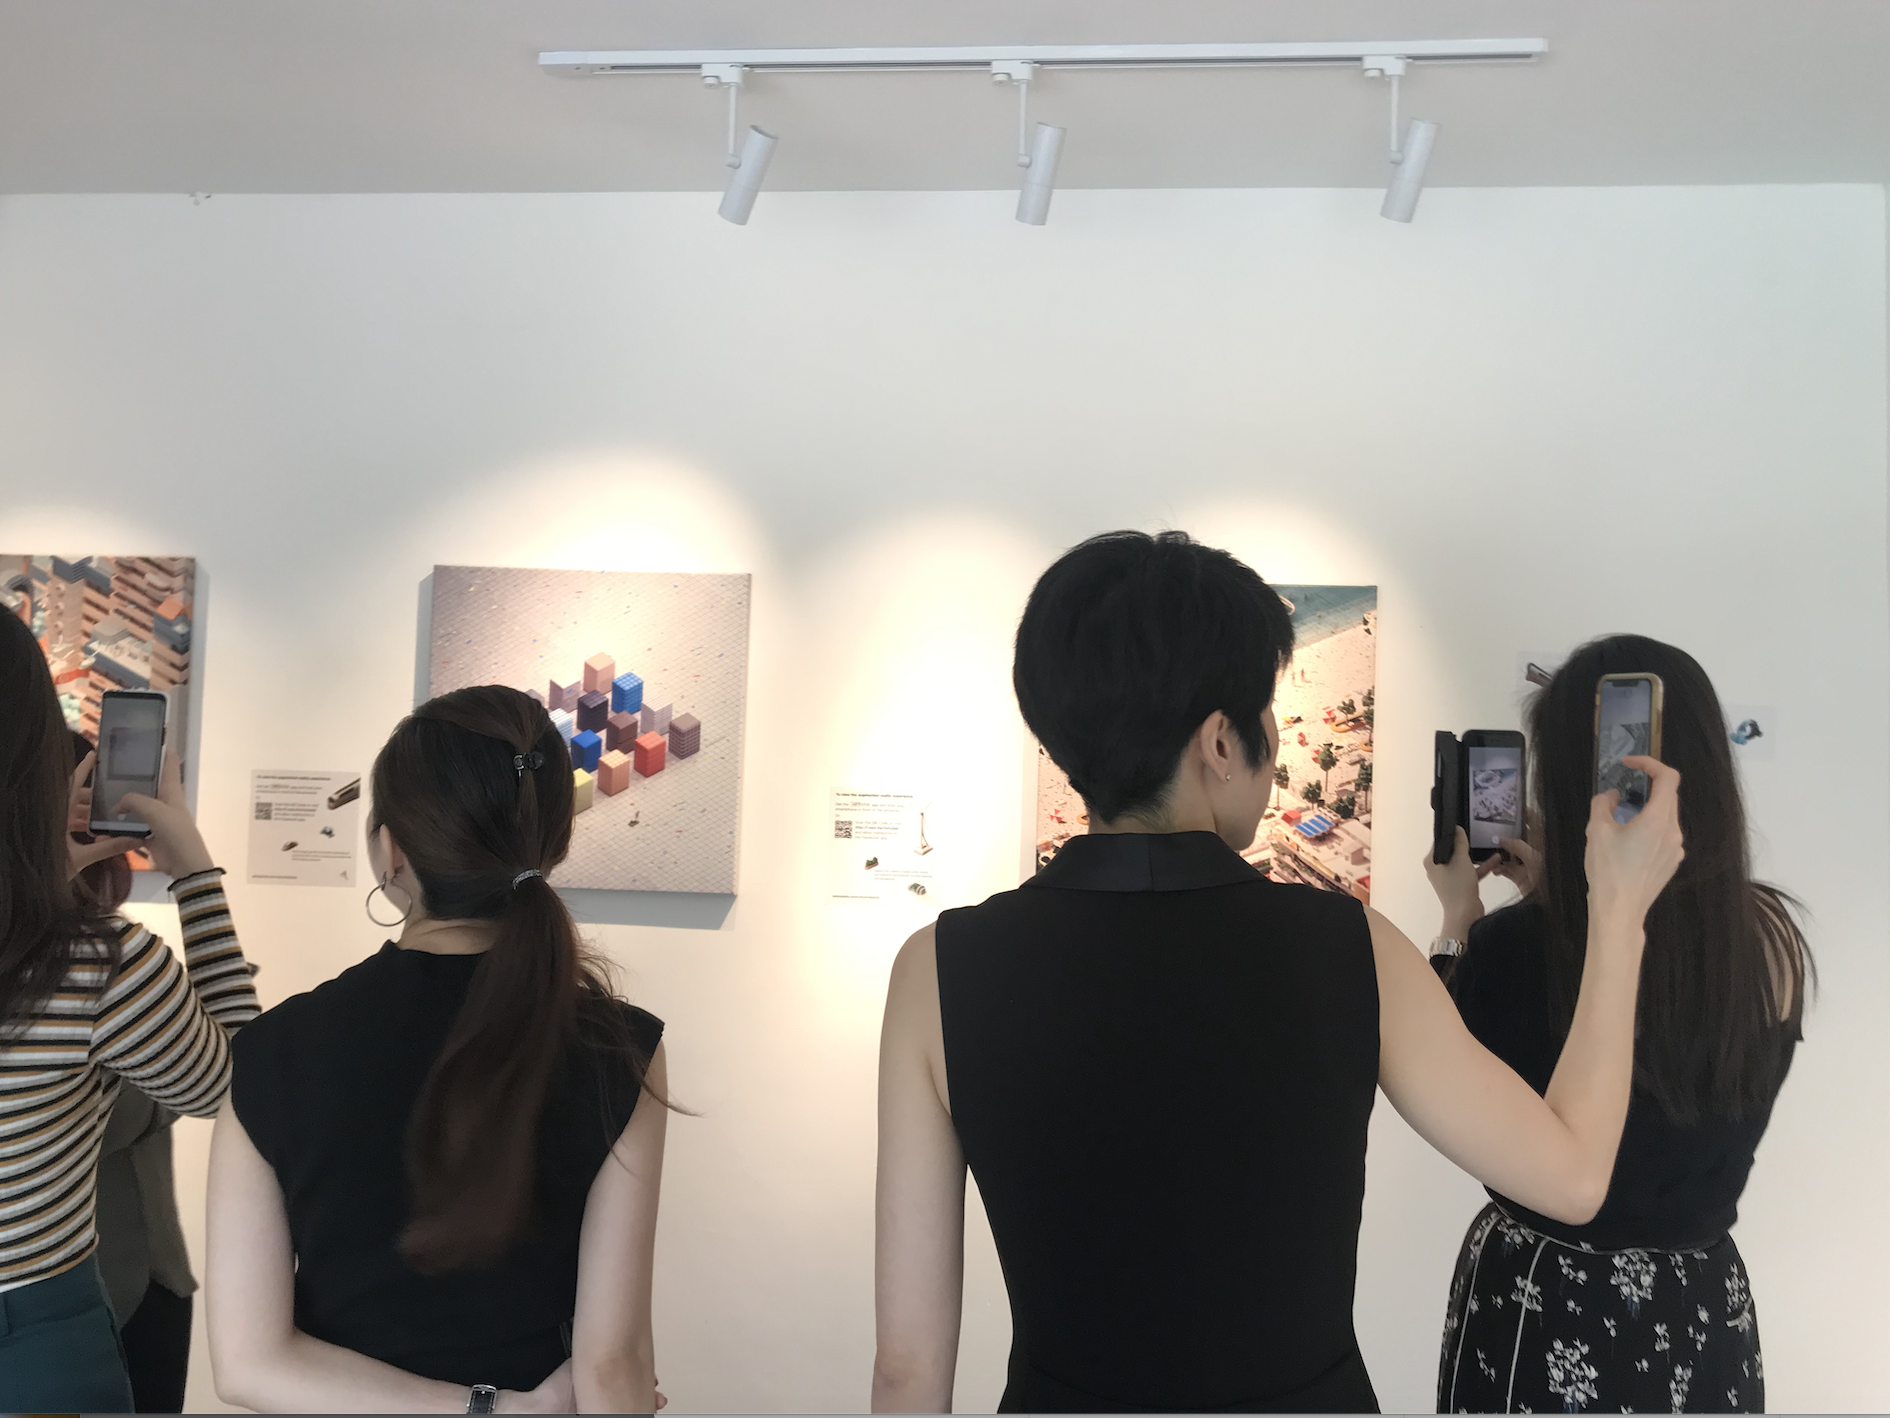 Visitors experiencing André Wee's A Better Tomorrow at Jam@Siri House.